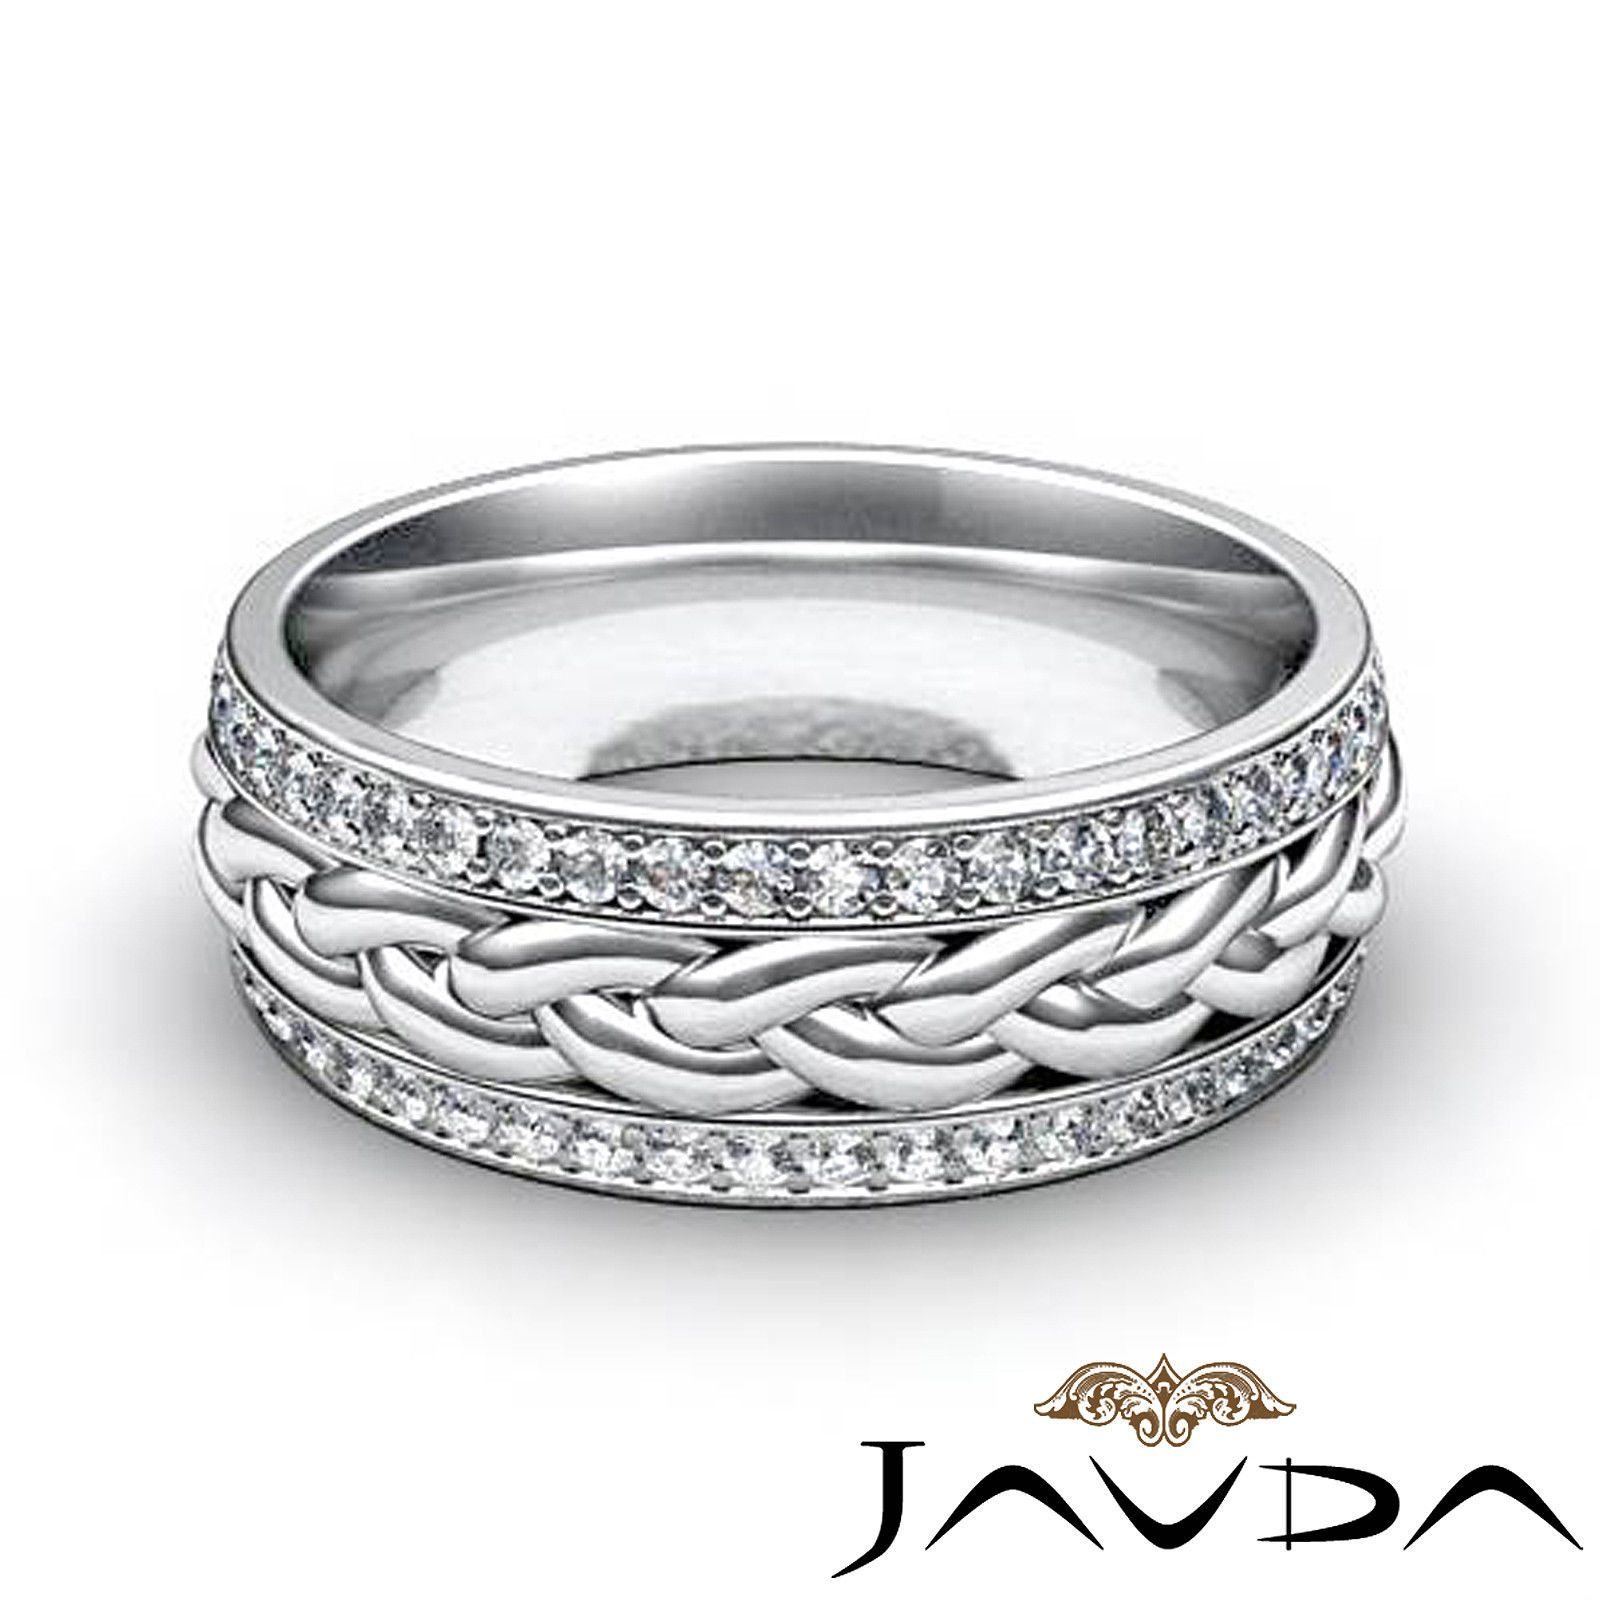 Details about Round Diamond Mens Eternity Wedding Band Braided